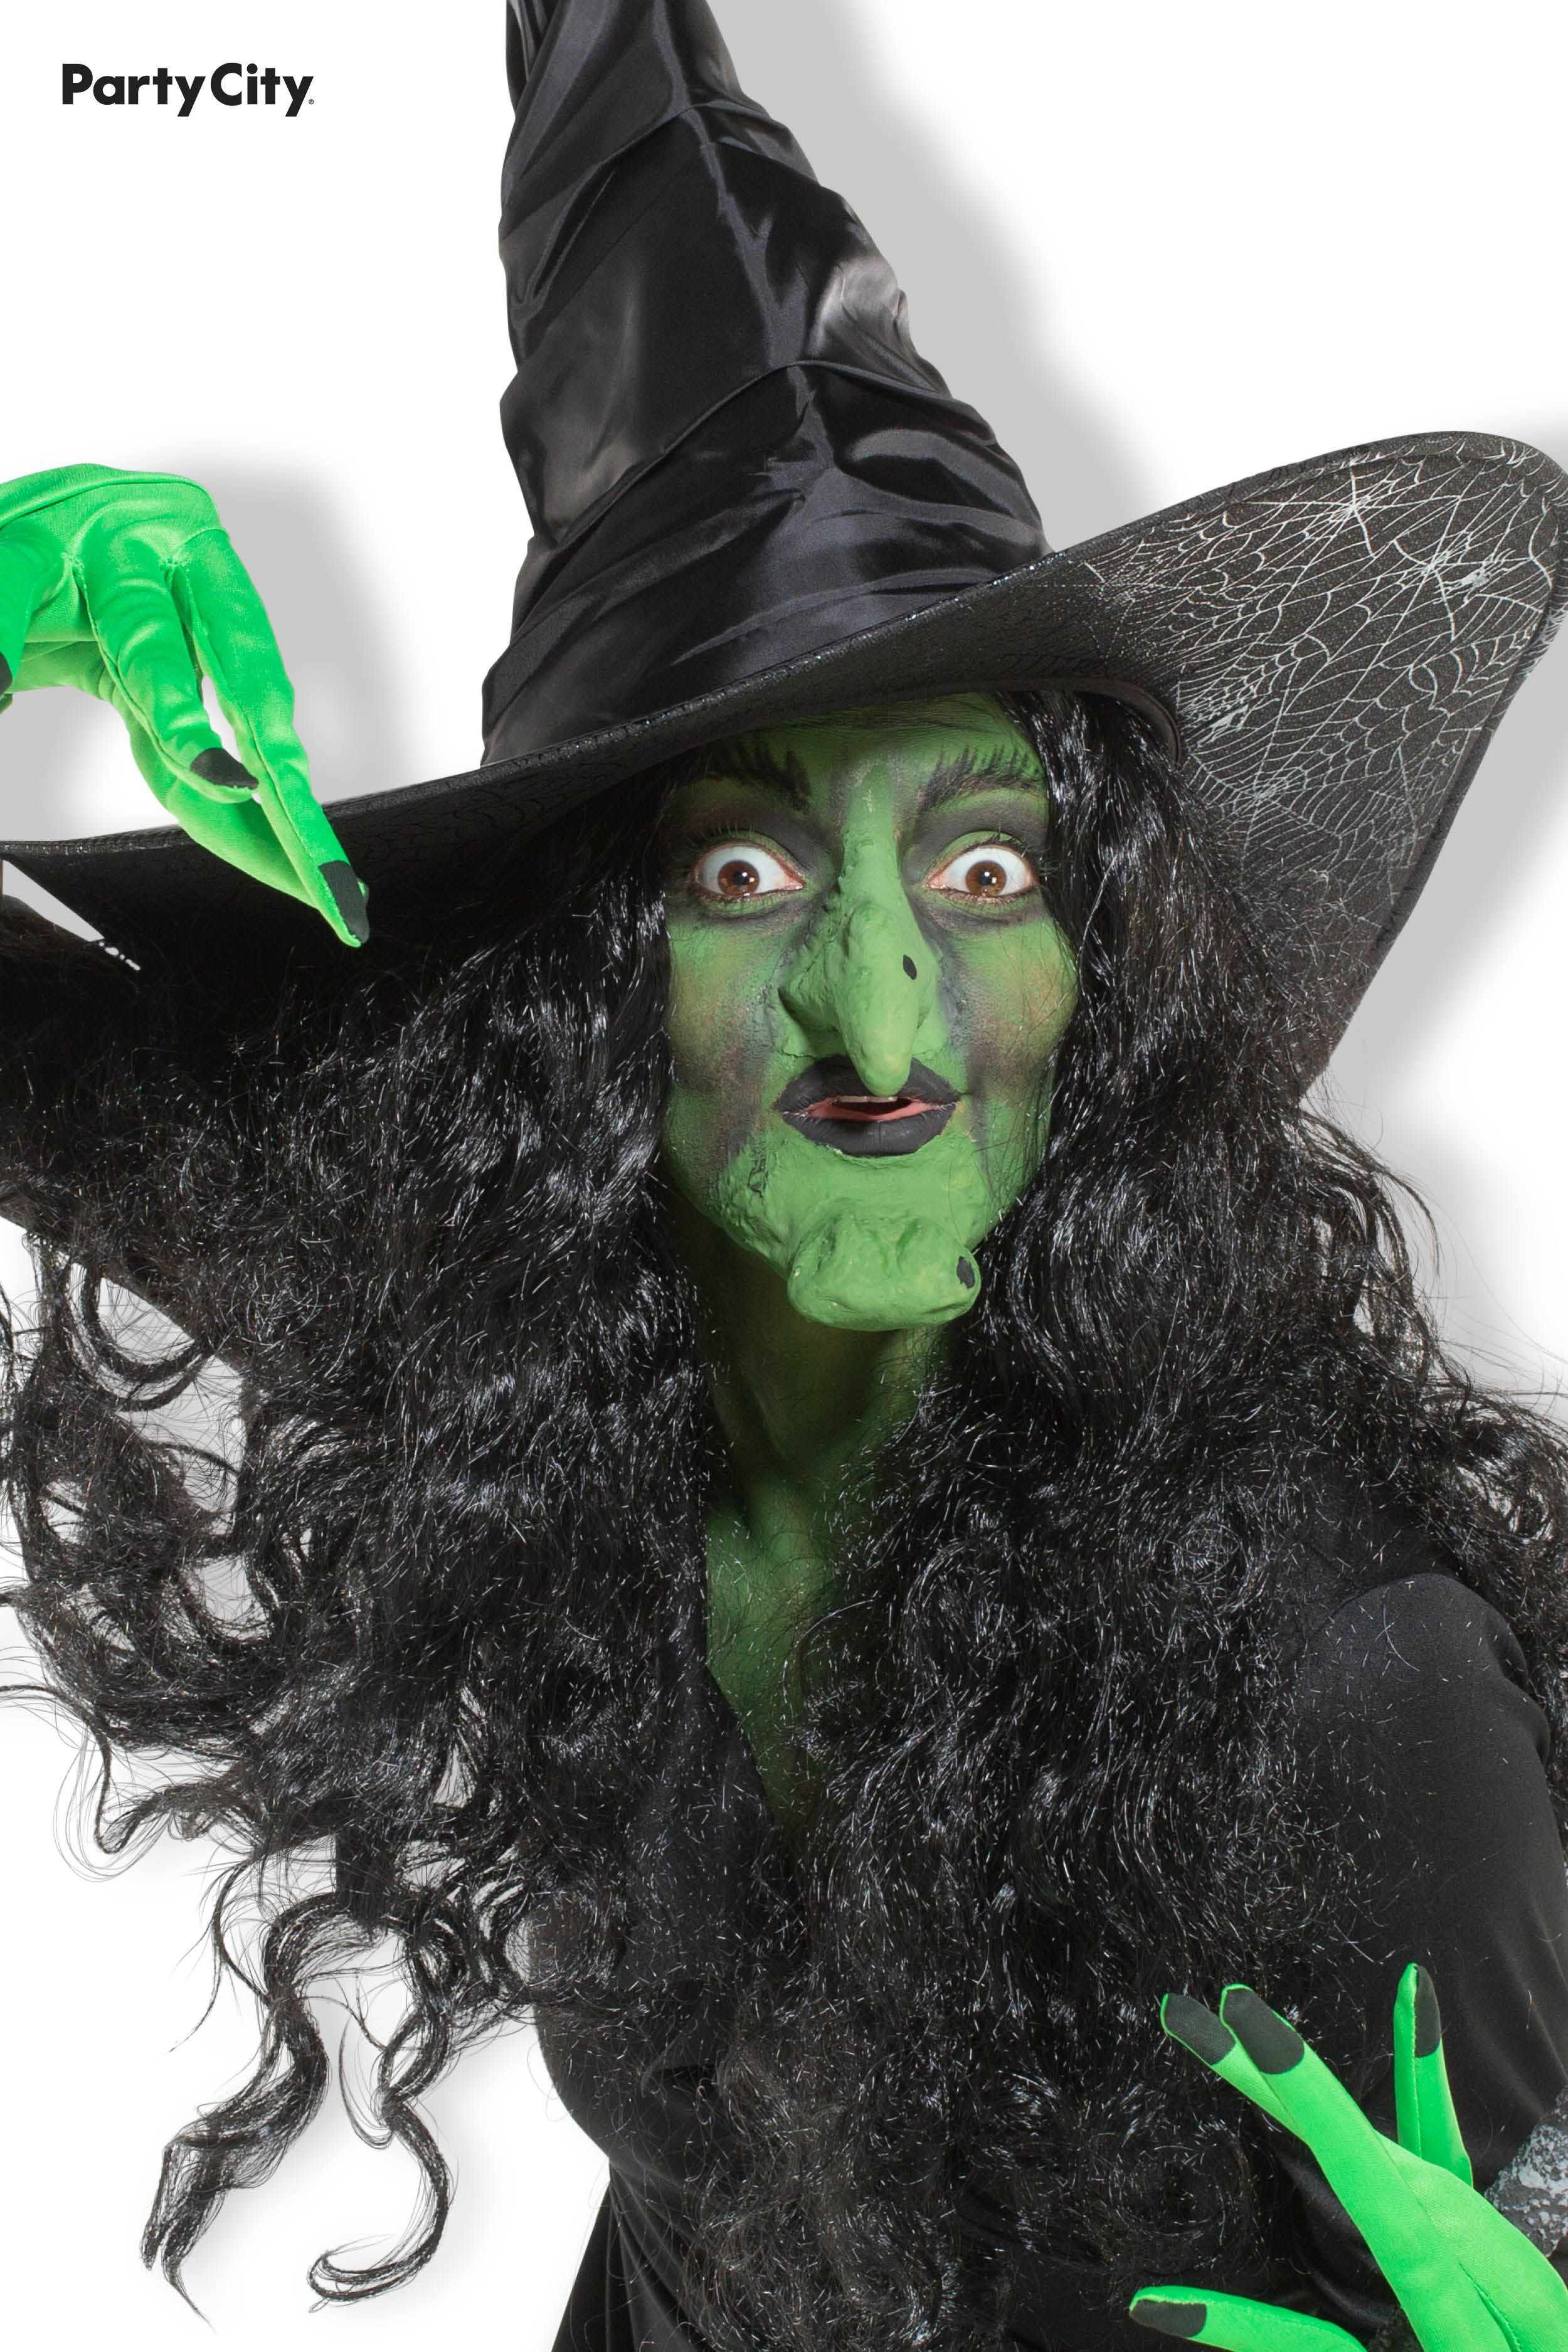 Halloween Costumes 2020 Witches Make it Your Own Witch Costume in 2020 | Witch costumes, Witch